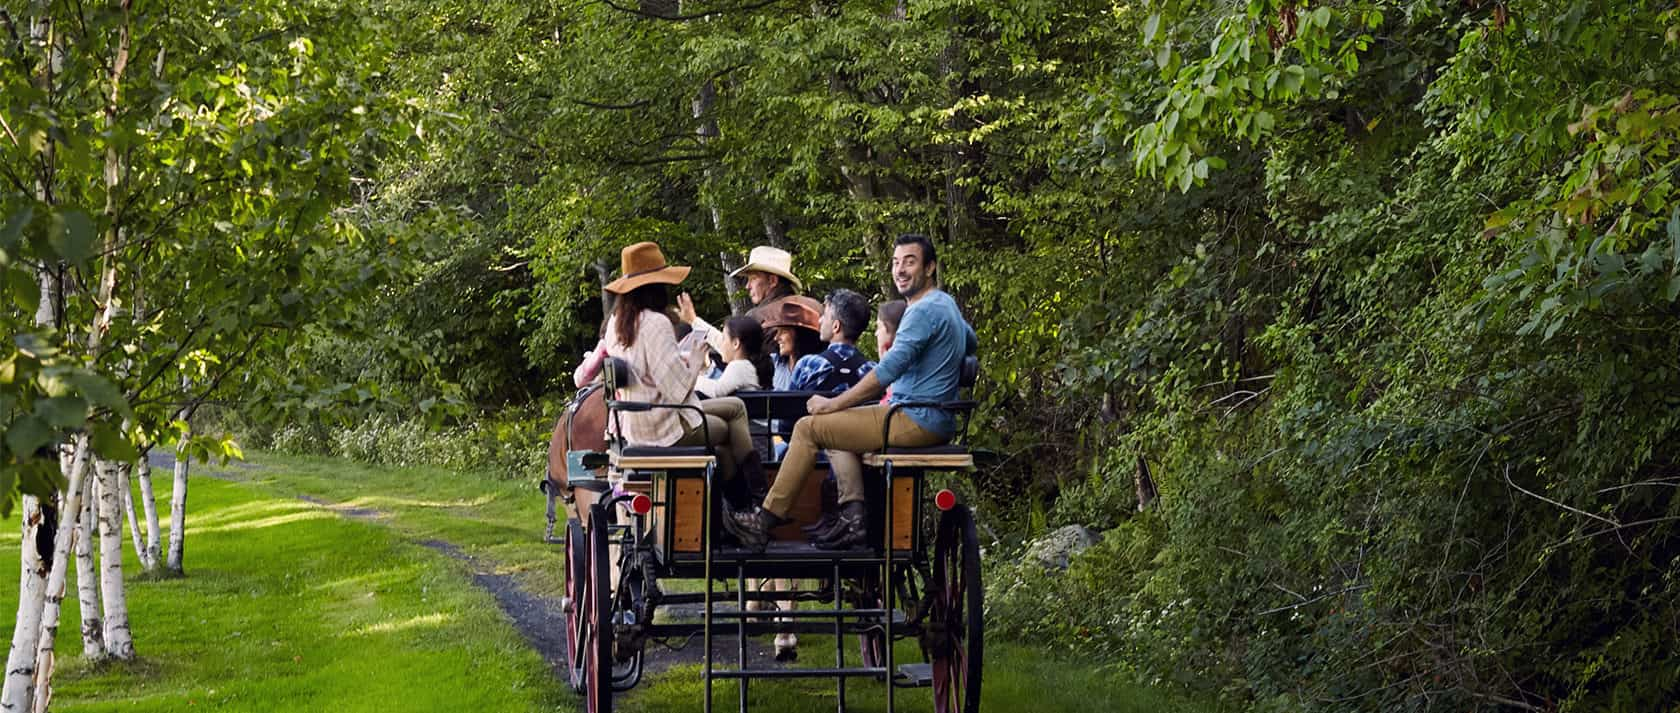 Carriage ride group